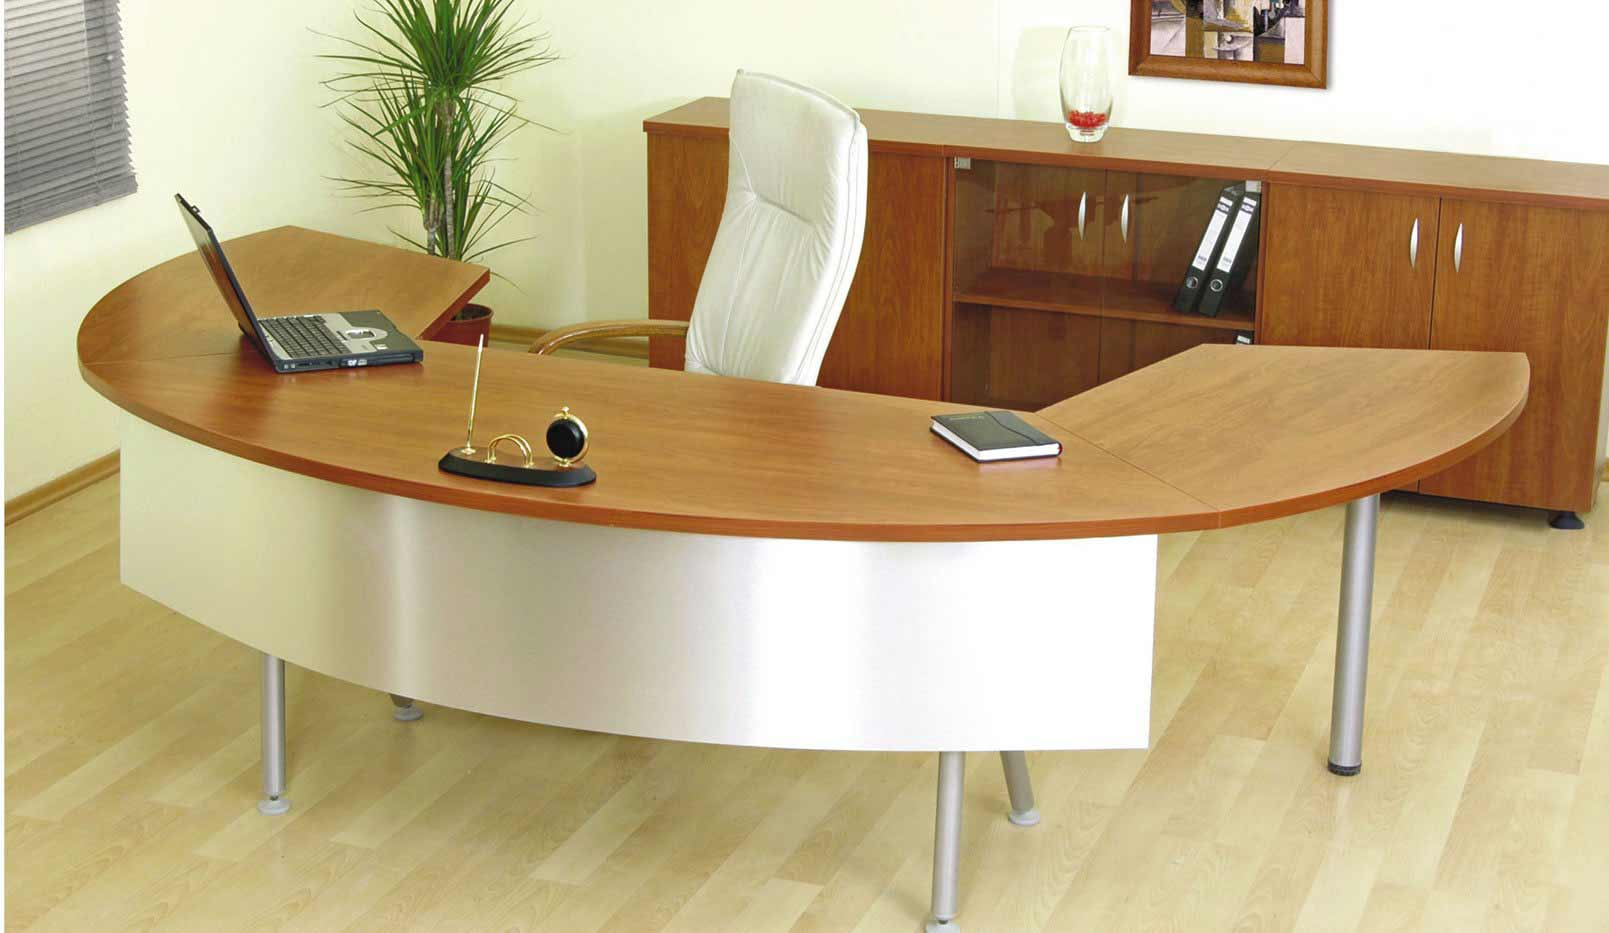 the super sleek berkley desk slides out to reveal a nice little